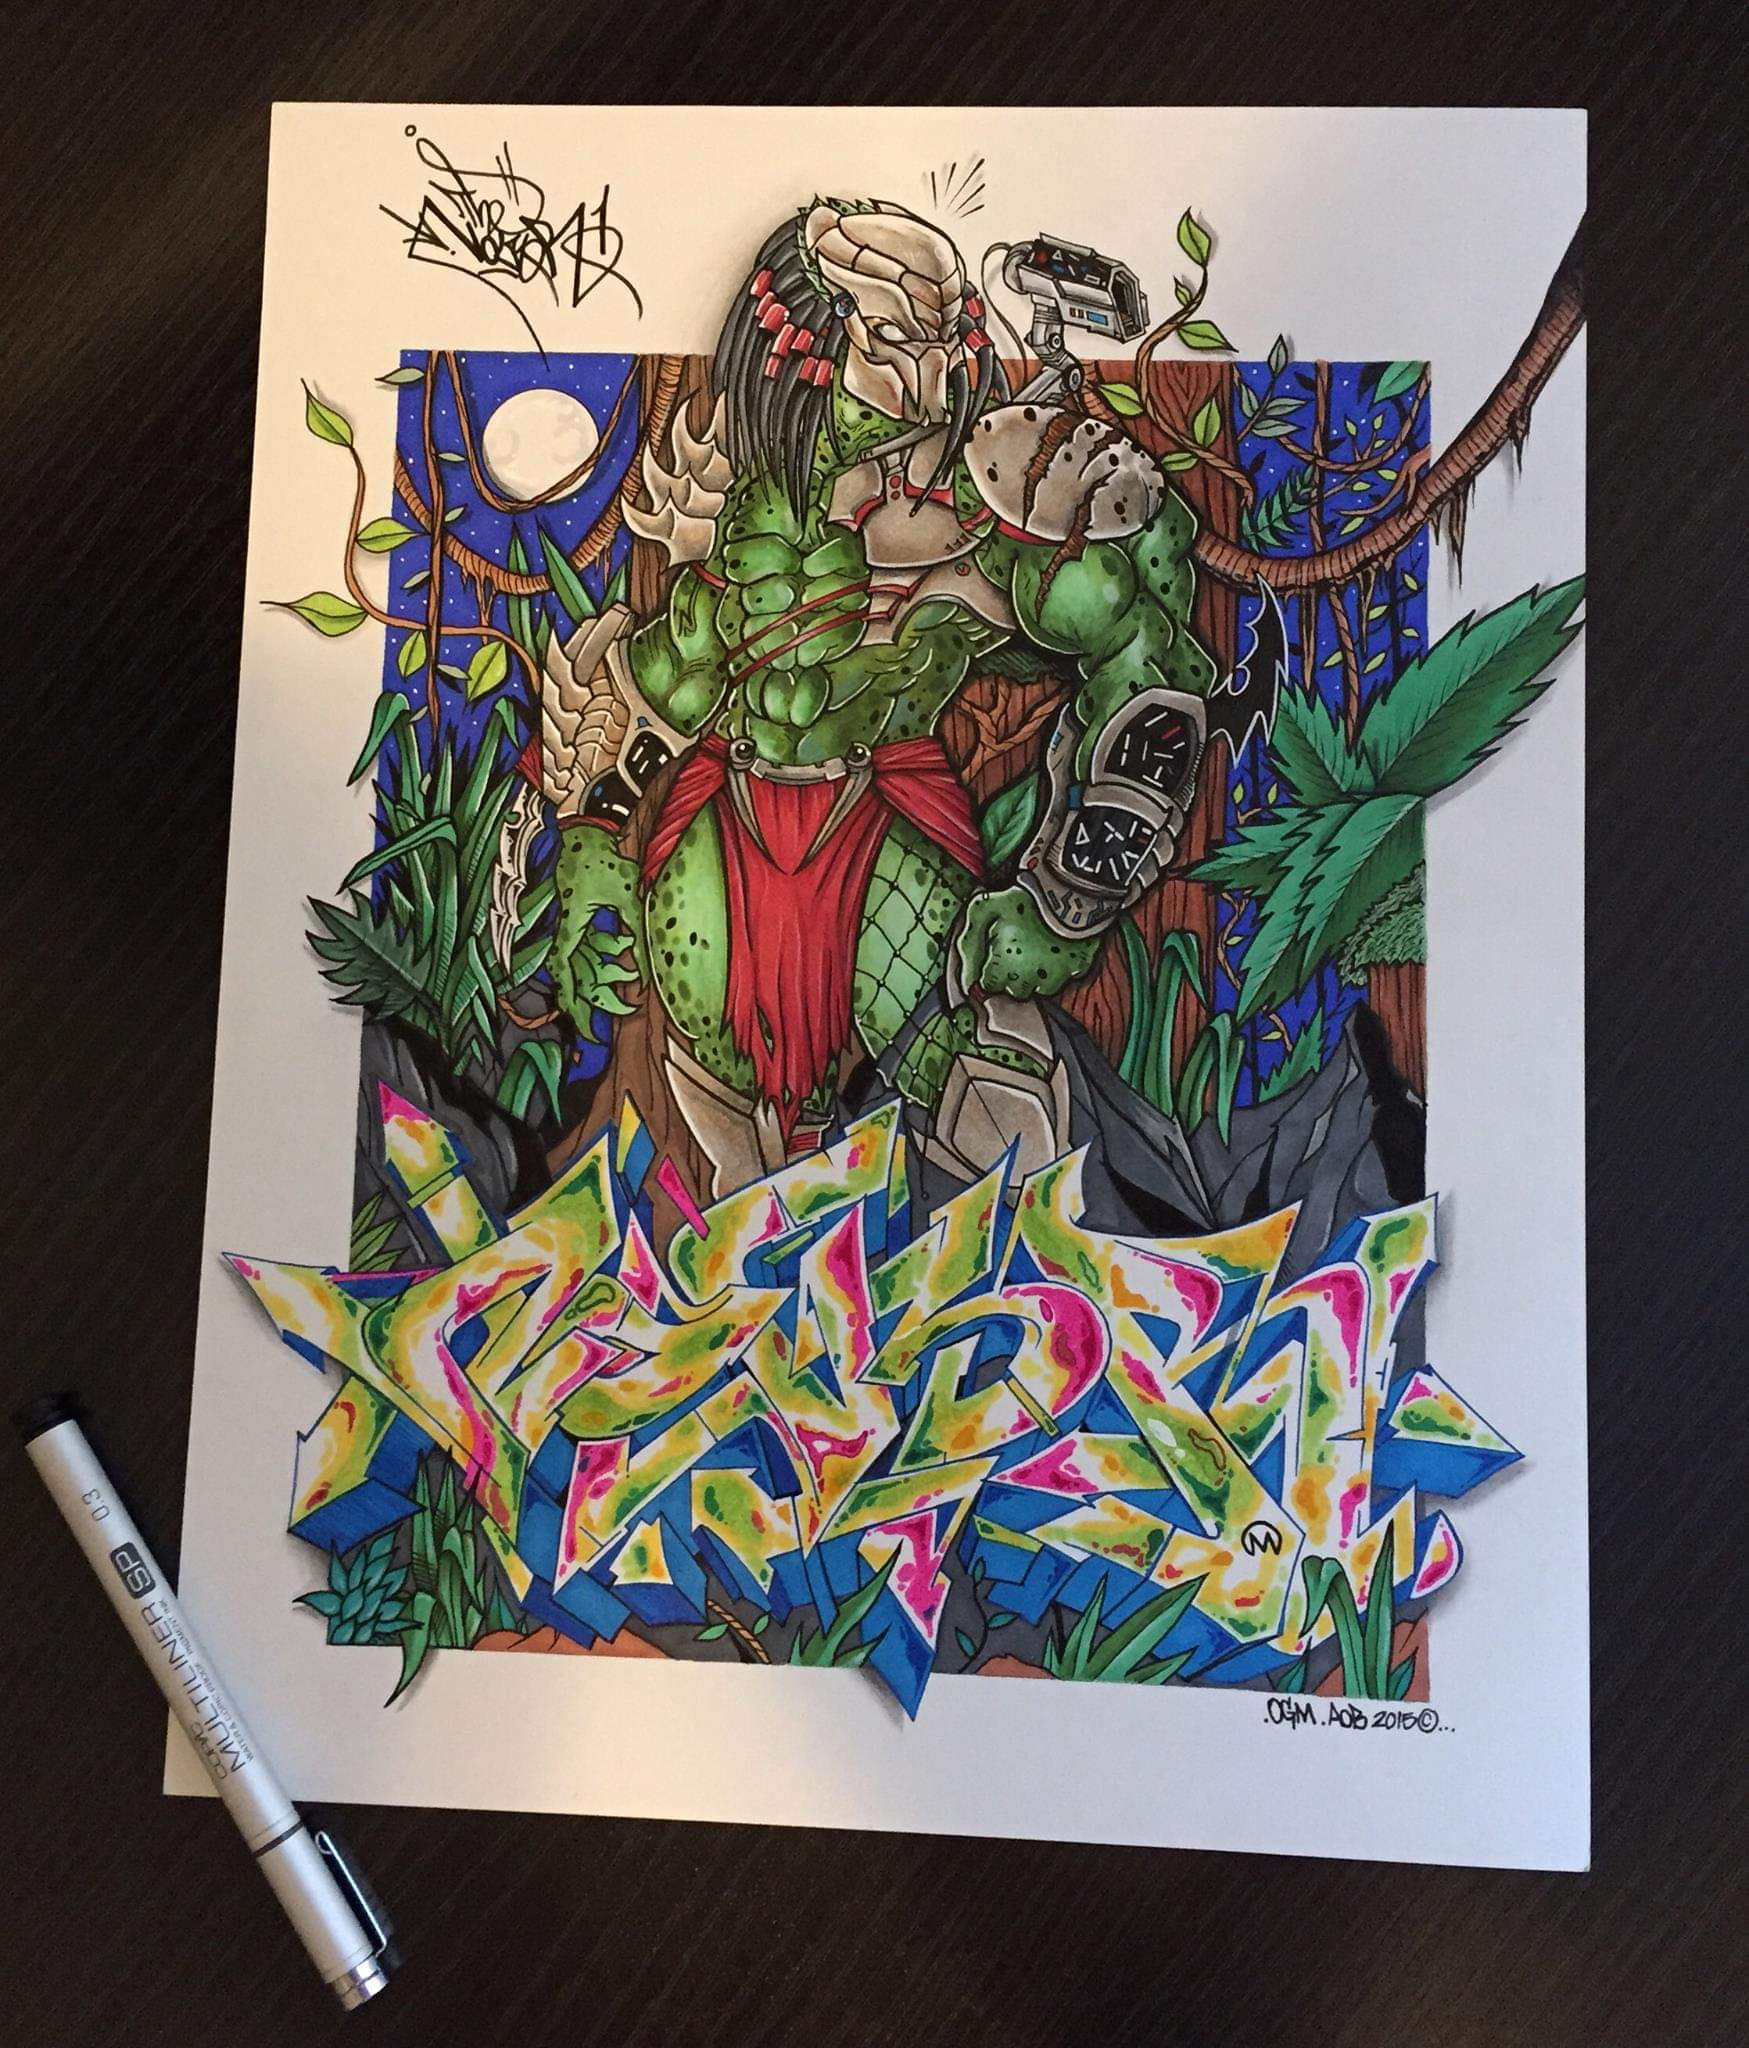 Predator by Nover, Pens and Markers on Paper, 2015.